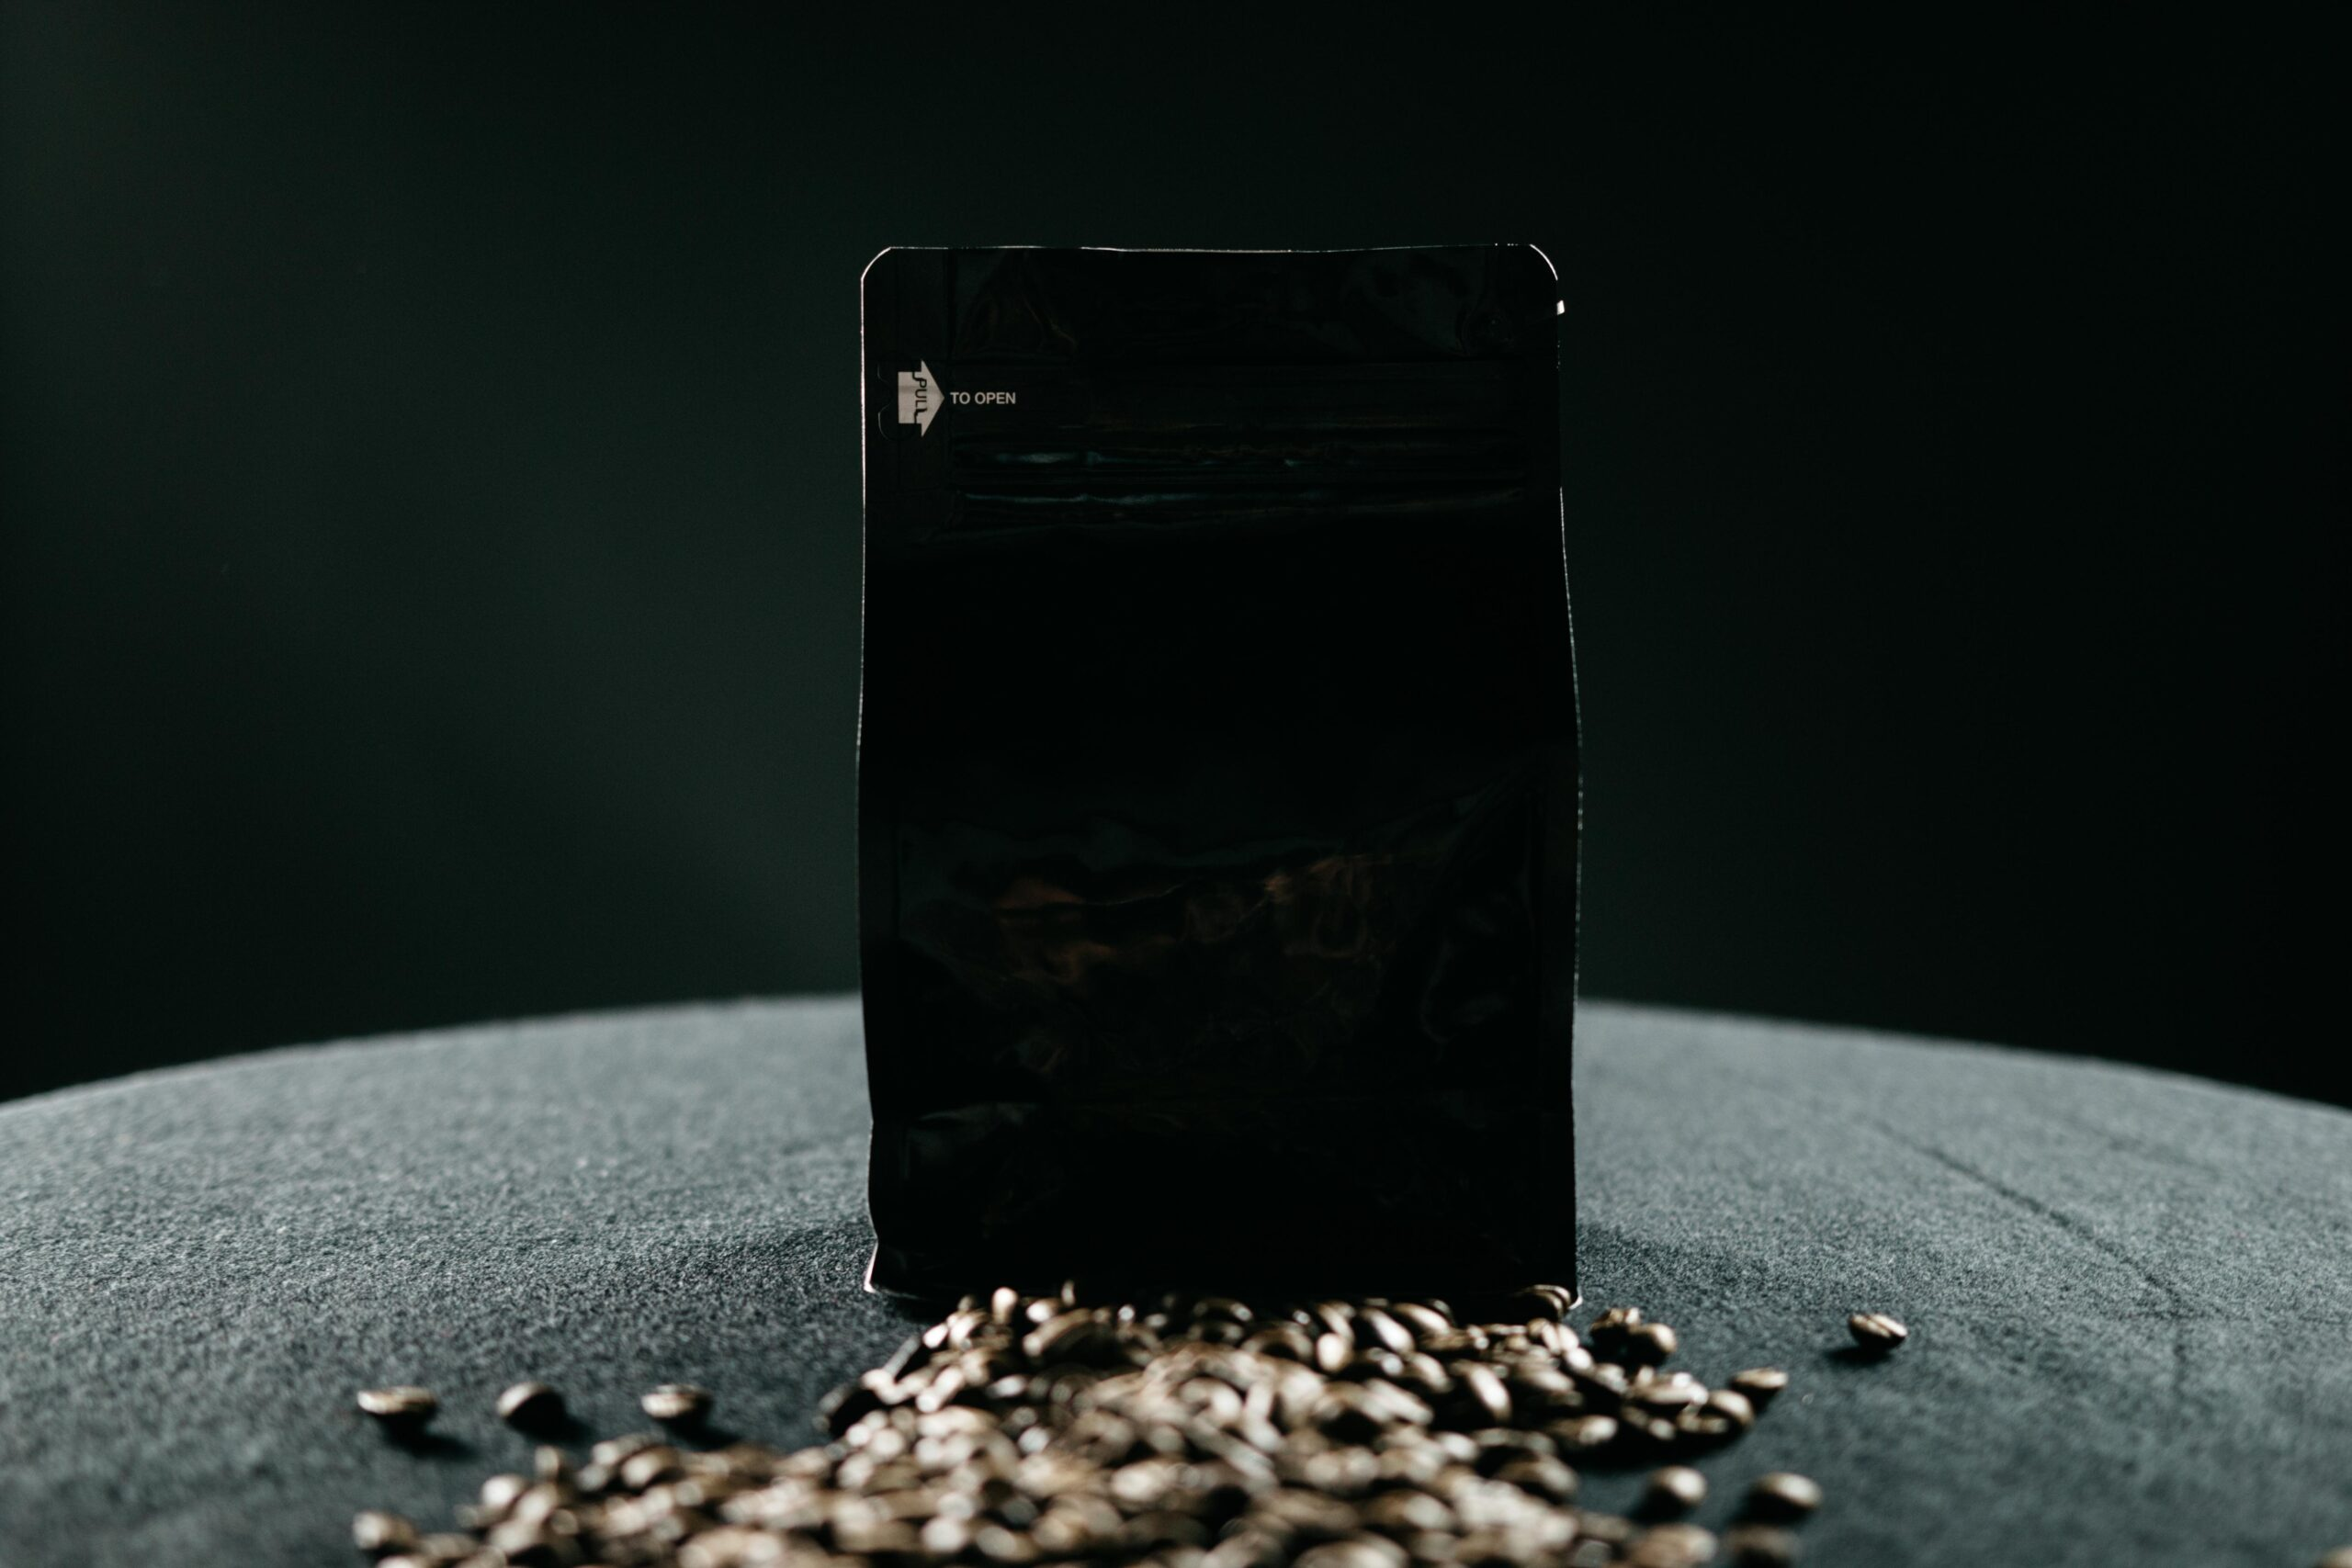 a bag of coffee beans